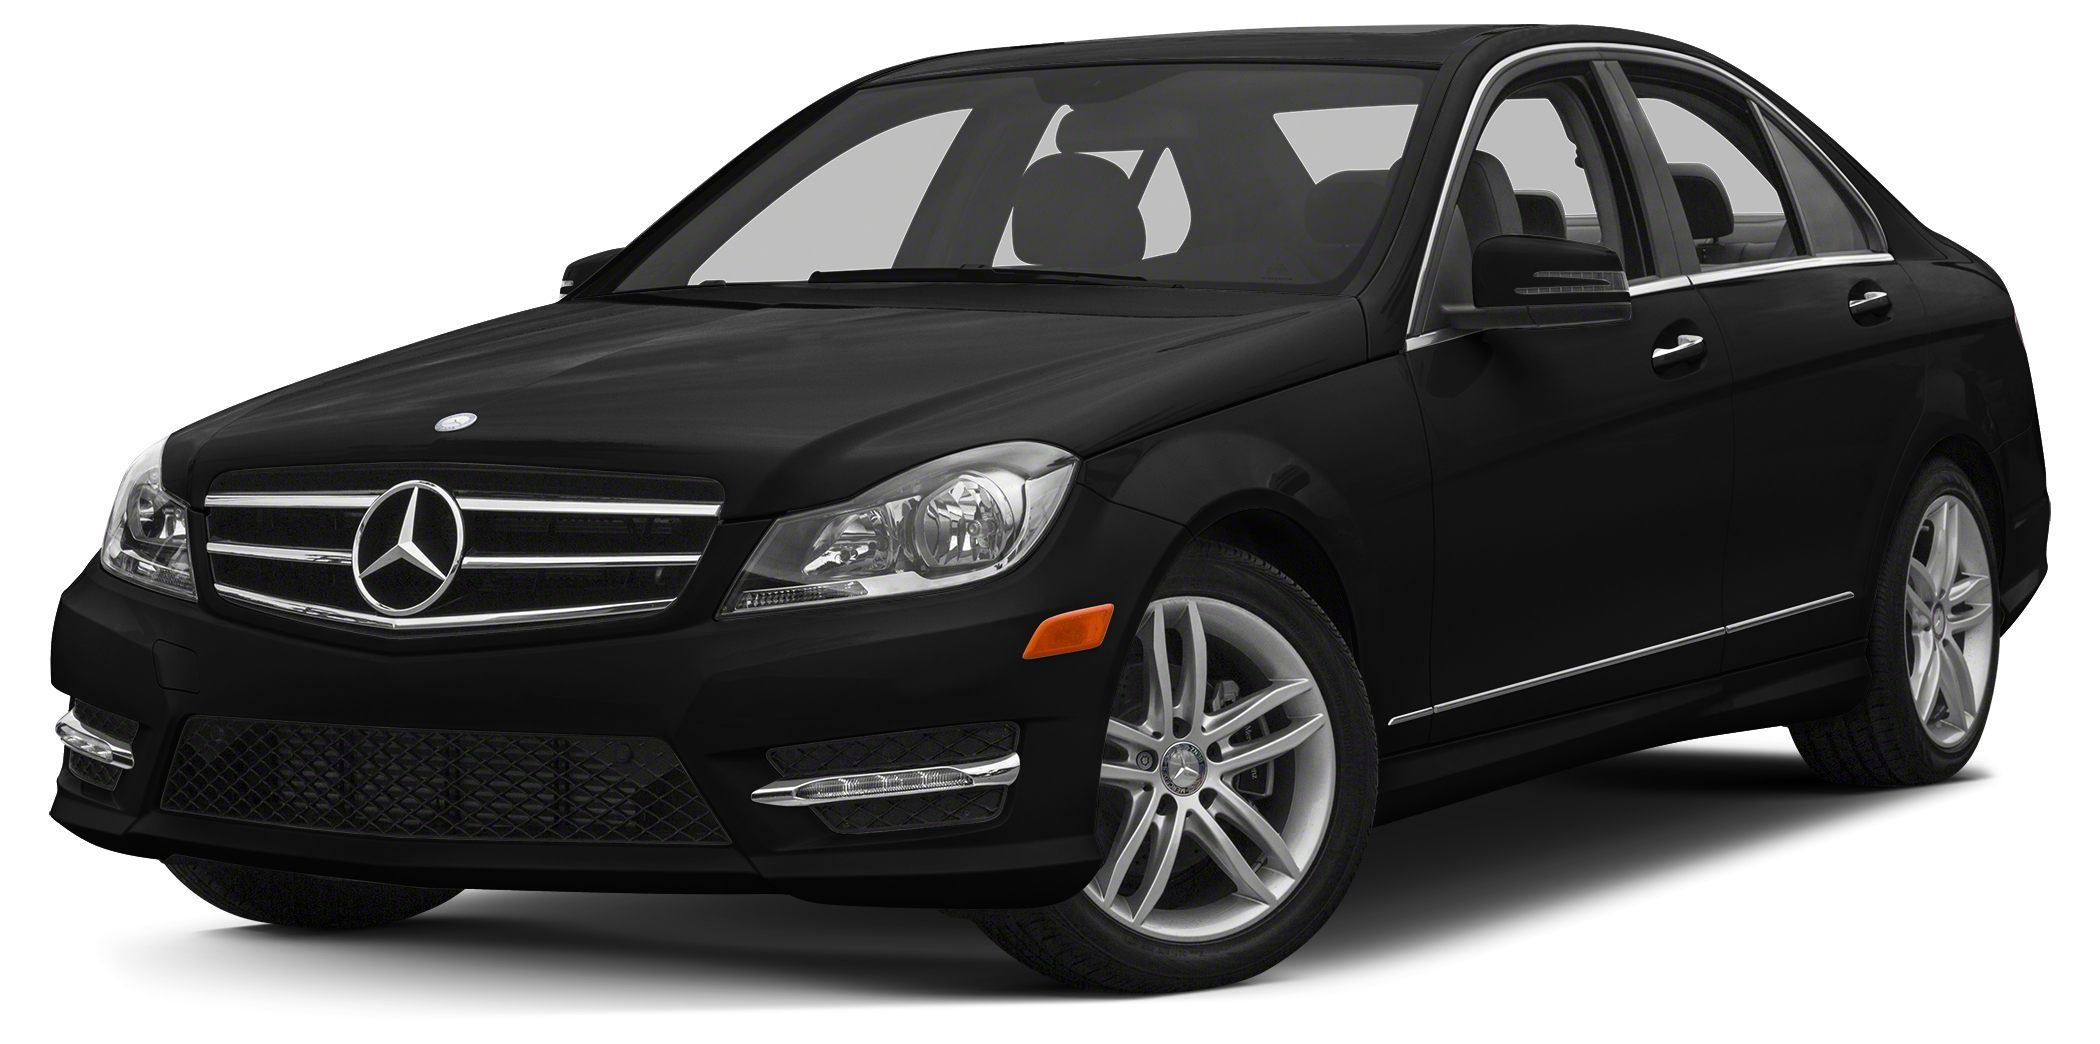 2014 MERCEDES C-Class C250 Sport This particular One-Owner Mercedes Benz is absolutely gorgeous M